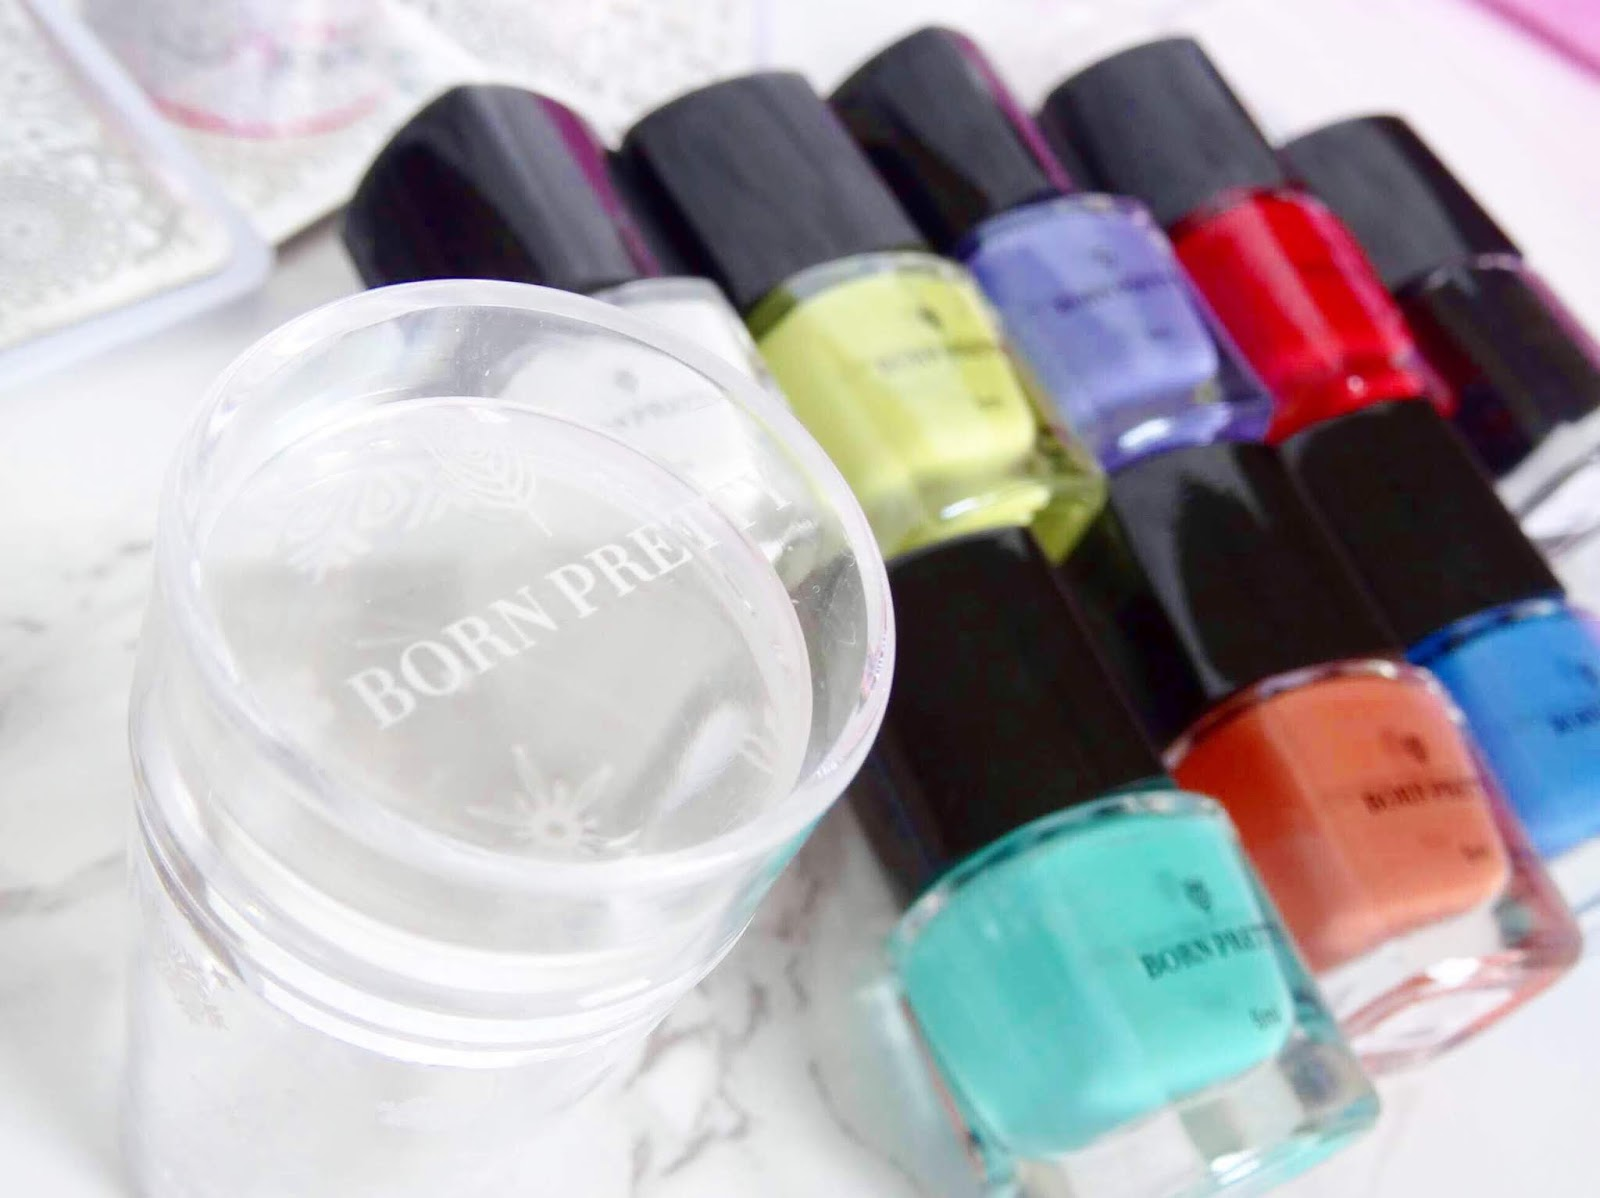 Born Pretty Stamping Polishes and Stamper